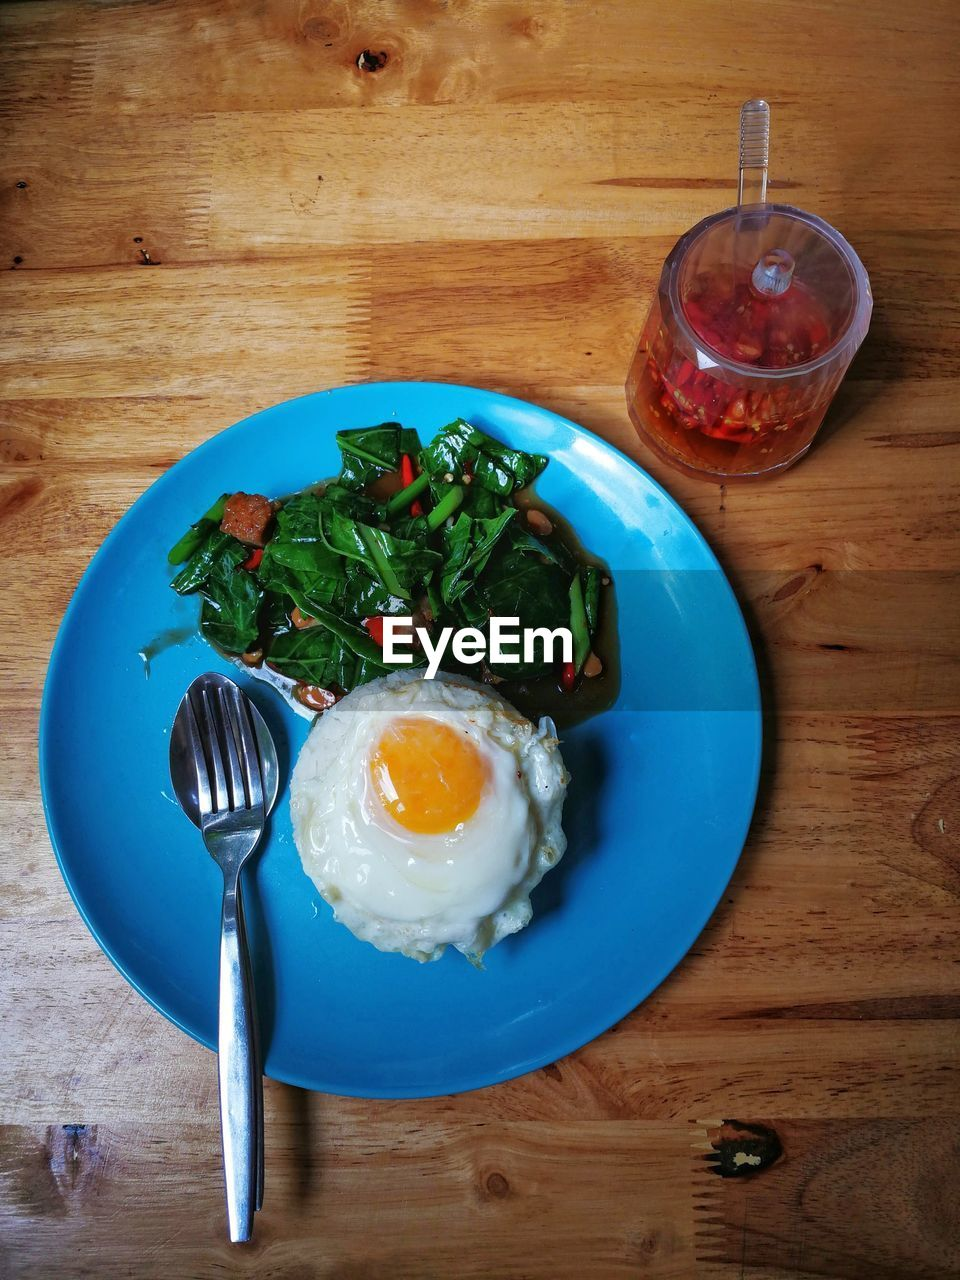 food and drink, food, egg, table, kitchen utensil, freshness, healthy eating, ready-to-eat, eating utensil, wellbeing, indoors, wood - material, breakfast, meal, fried egg, still life, no people, directly above, plate, household equipment, fried, egg yolk, glass, sunny side up, boiled egg